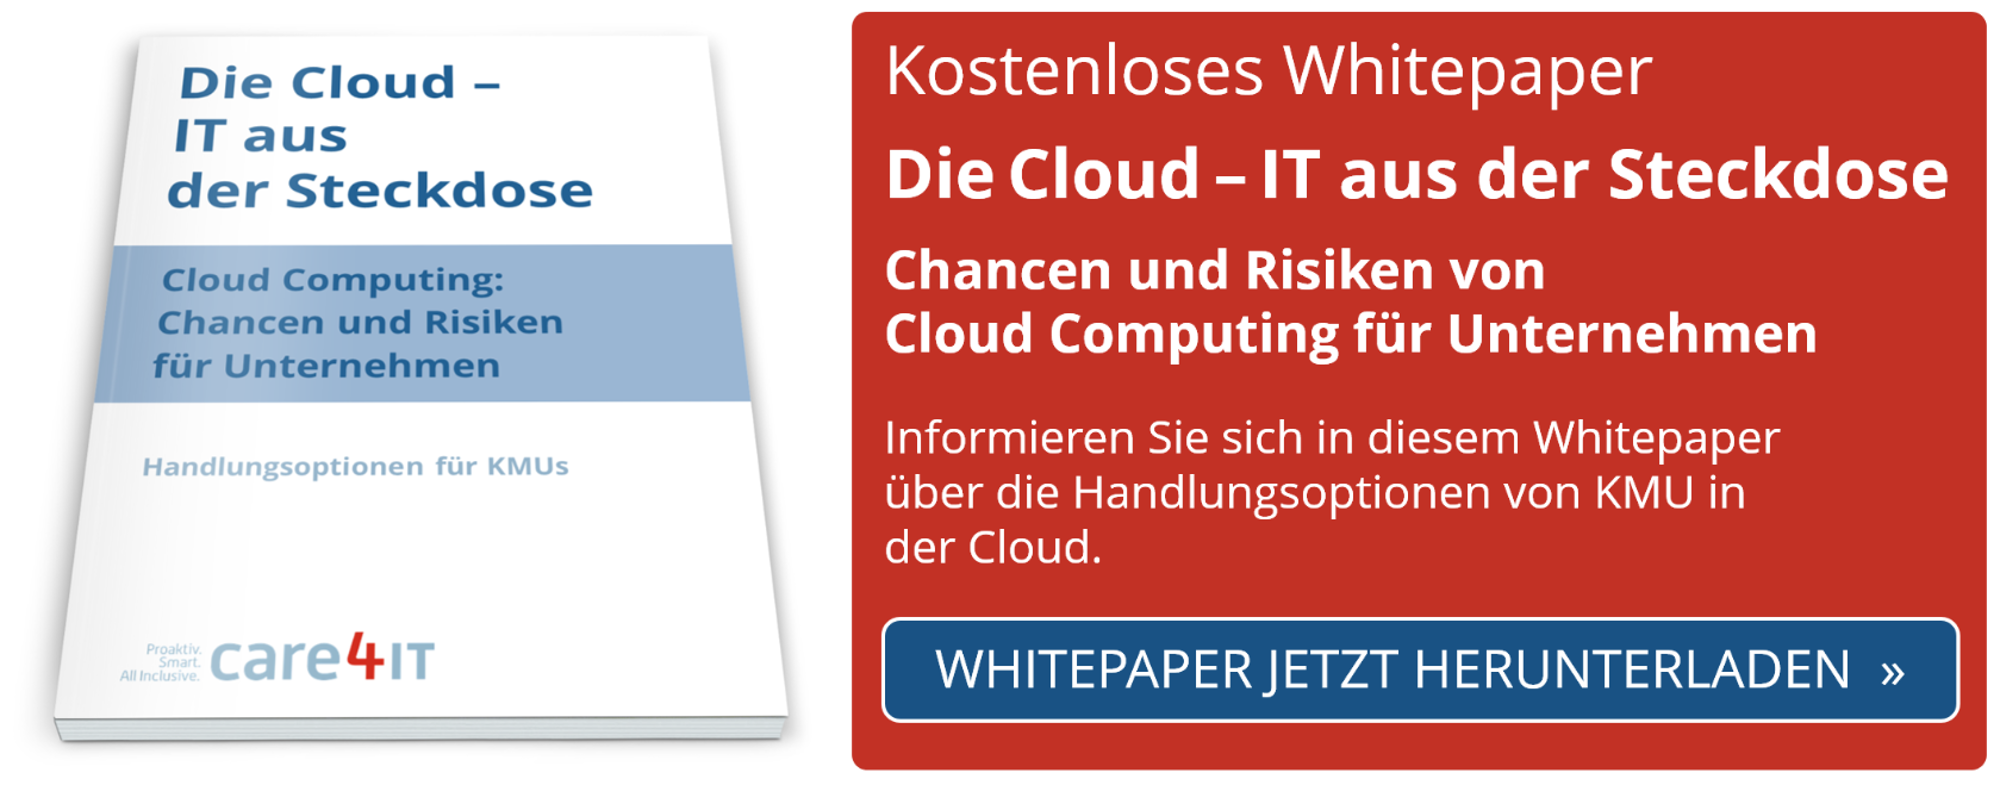 Cloud: Chancen und Risiken für KMU | Managed IT Services | Zürich | care4IT